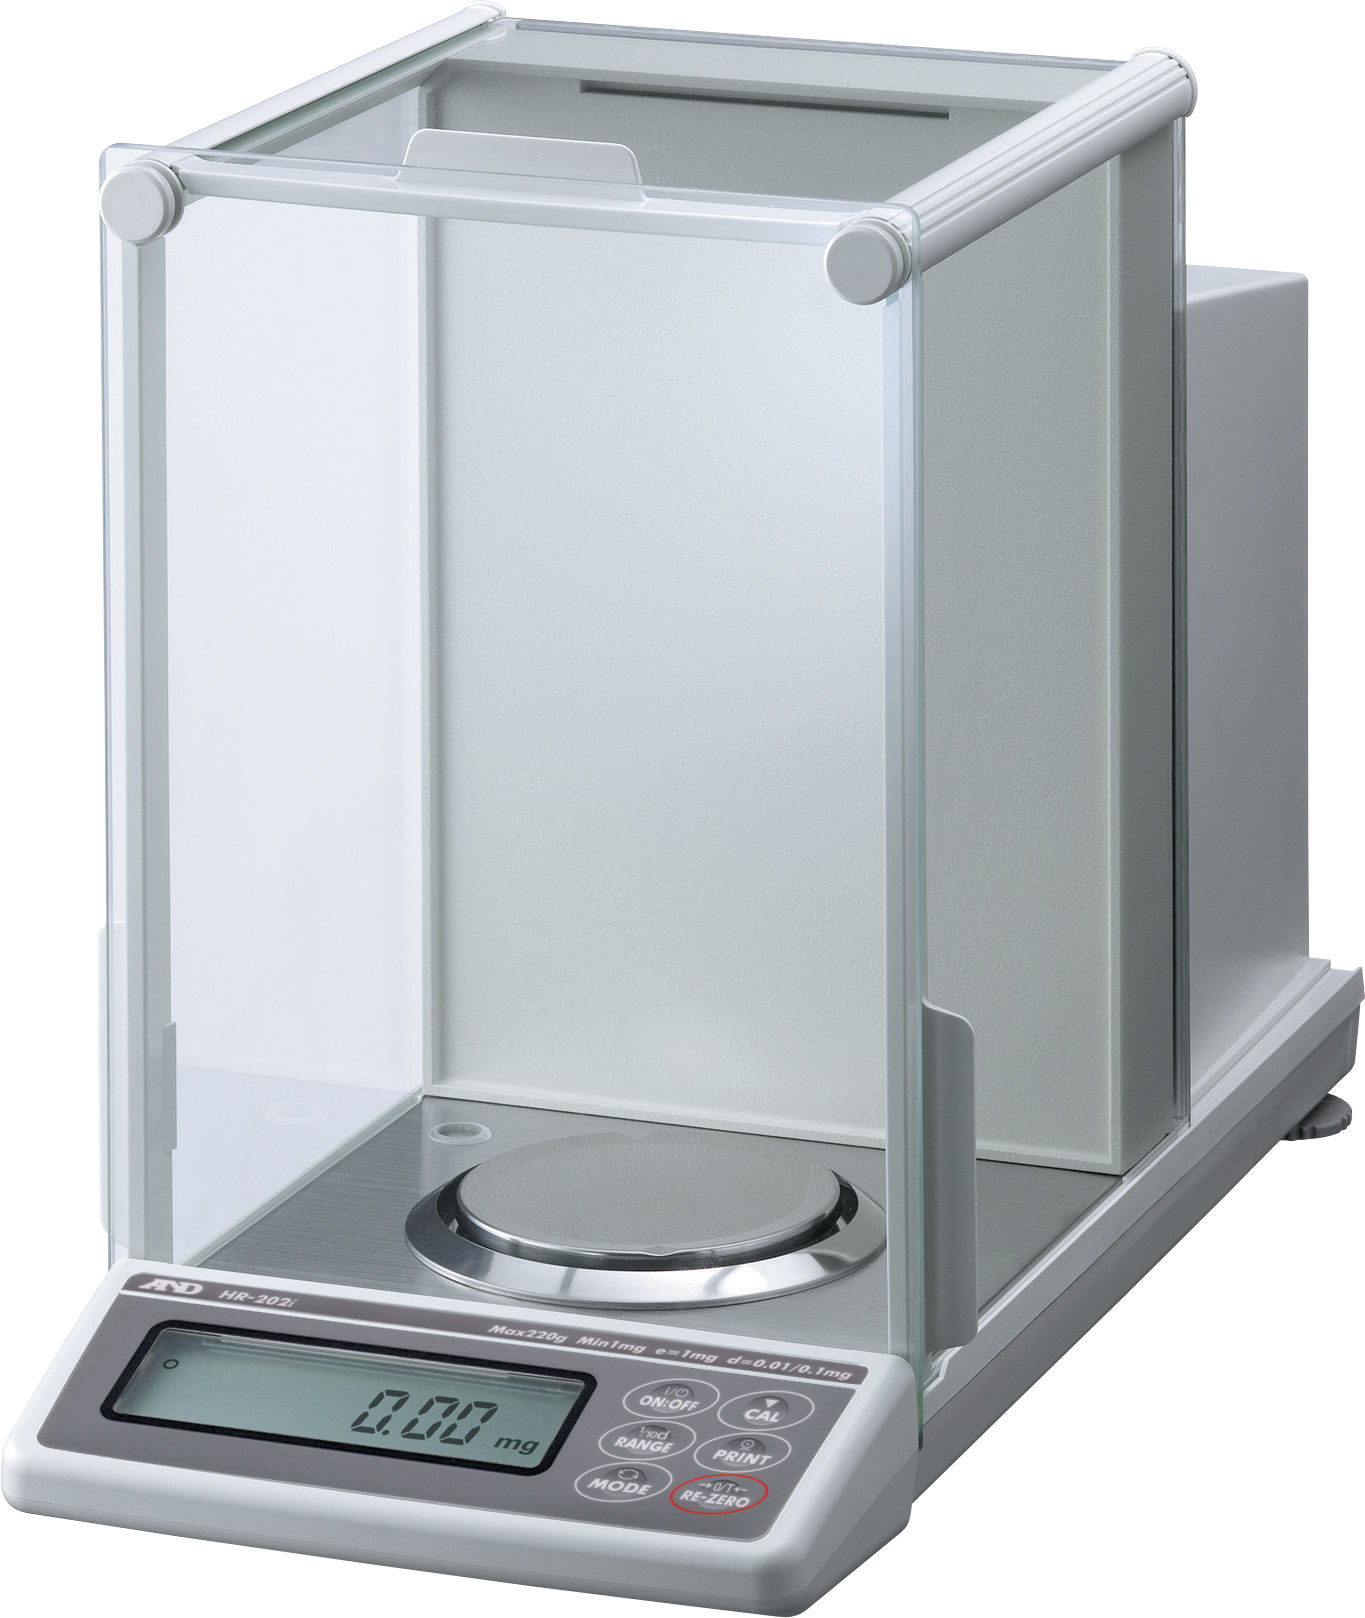 A&D HR-i SERIES ANALYTICAL BALANCE